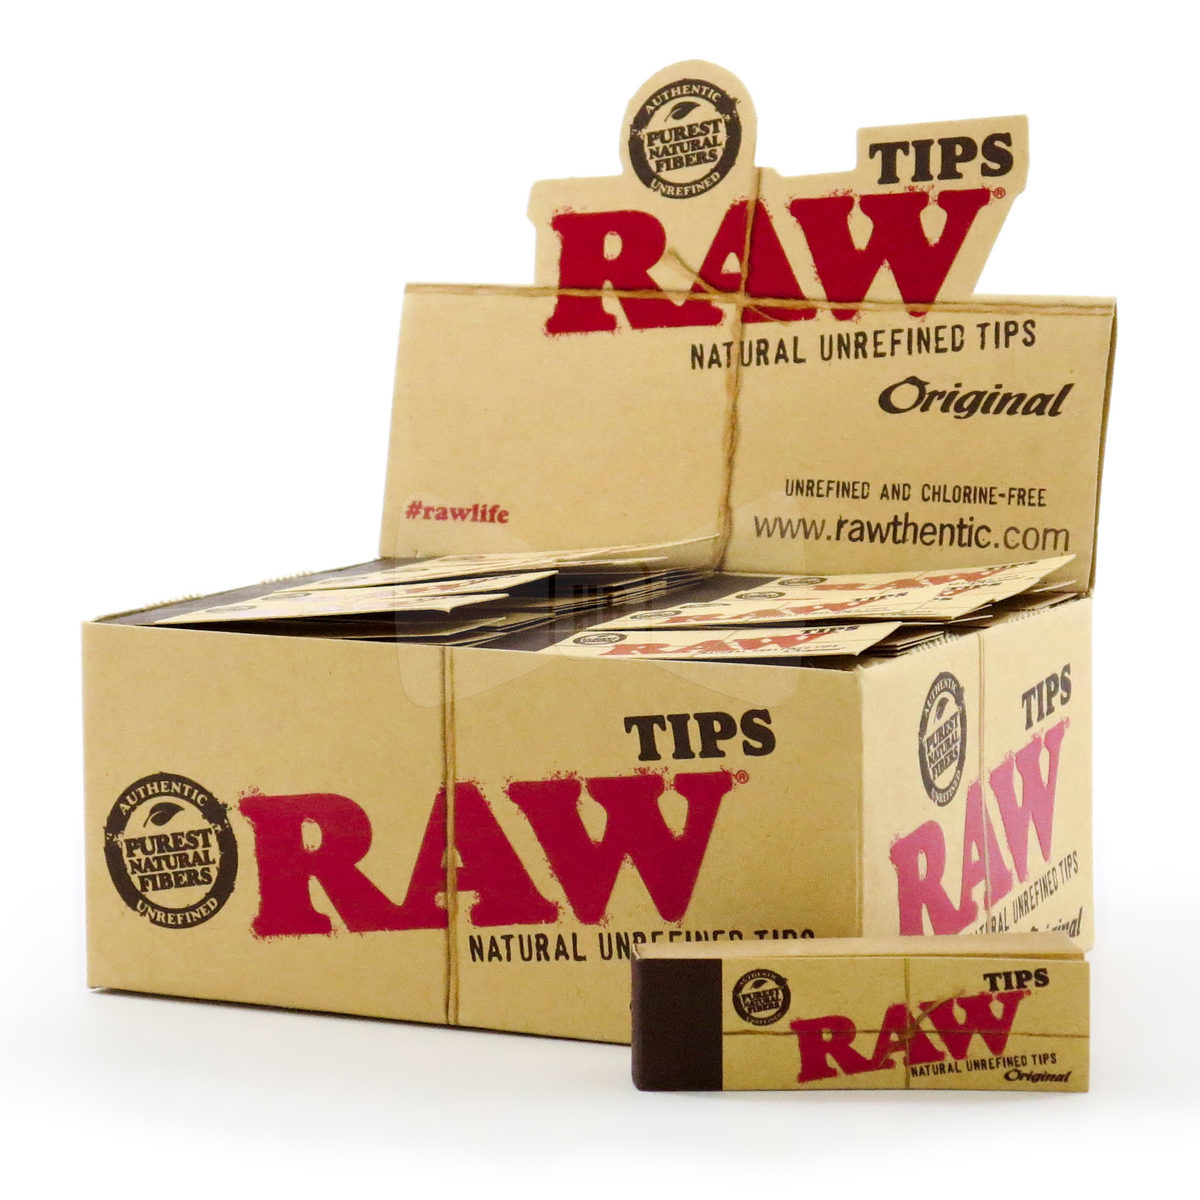 RAW Roll-Up Tips Box